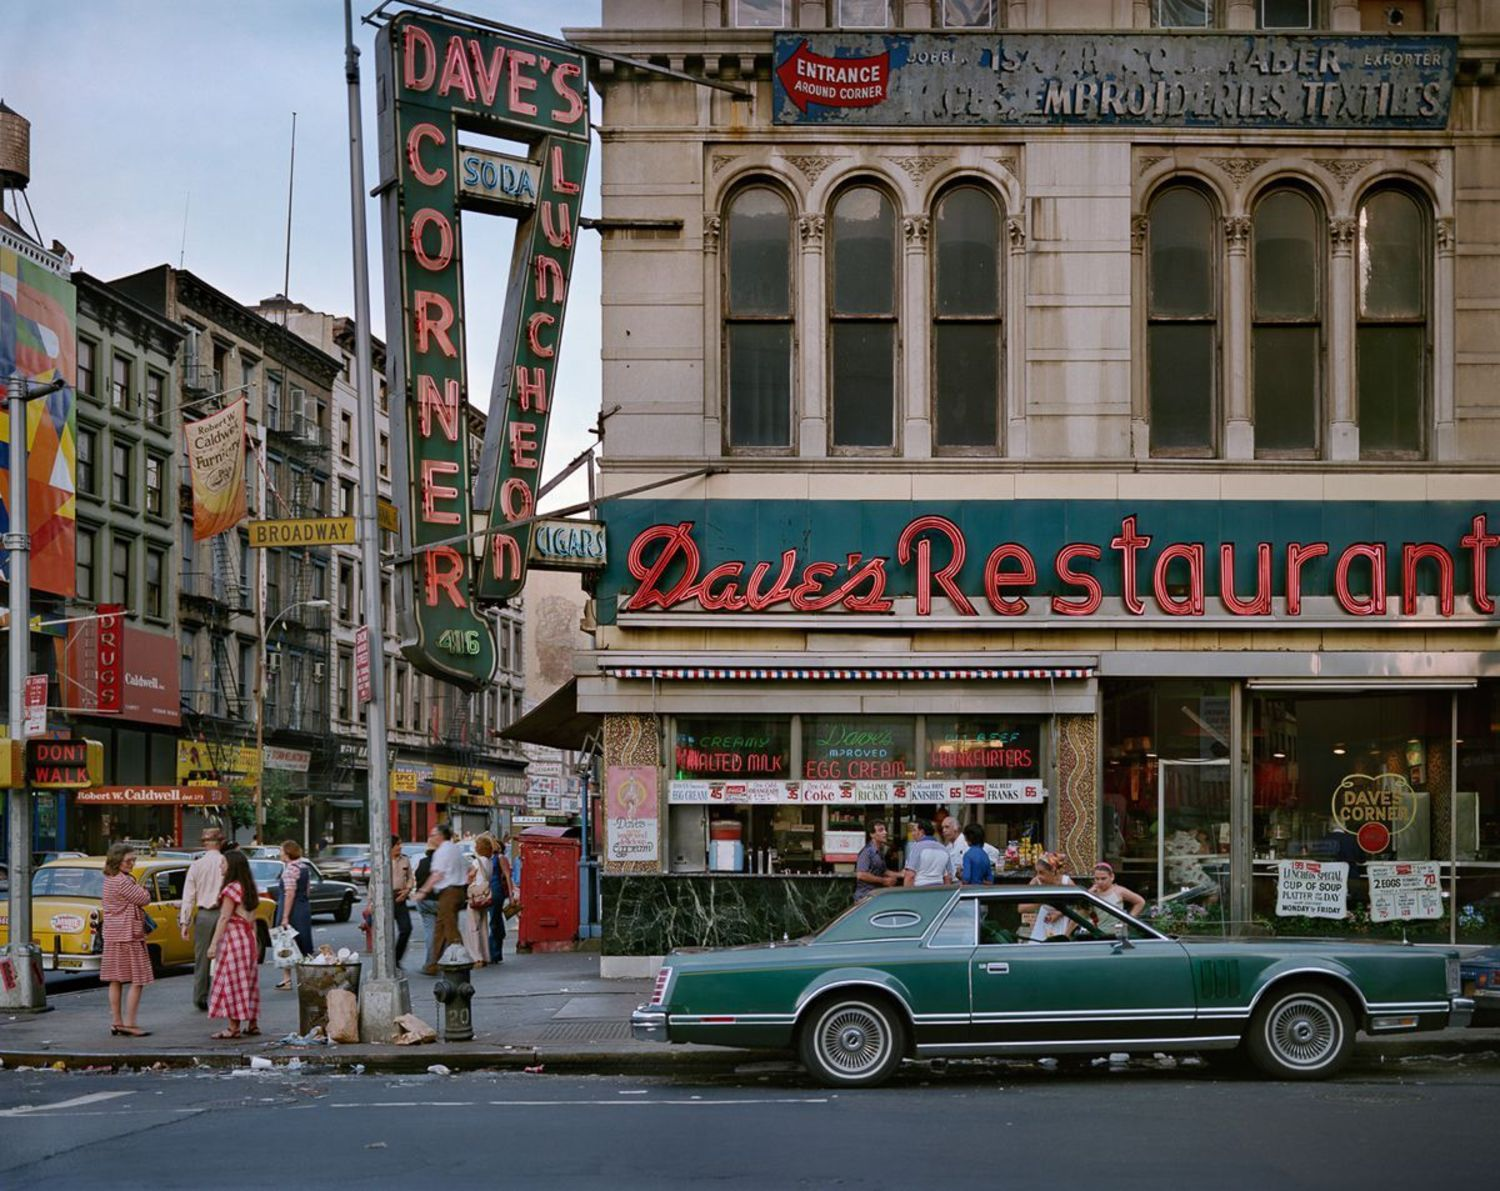 Canal Street and Broadway, New York, New York, 1984